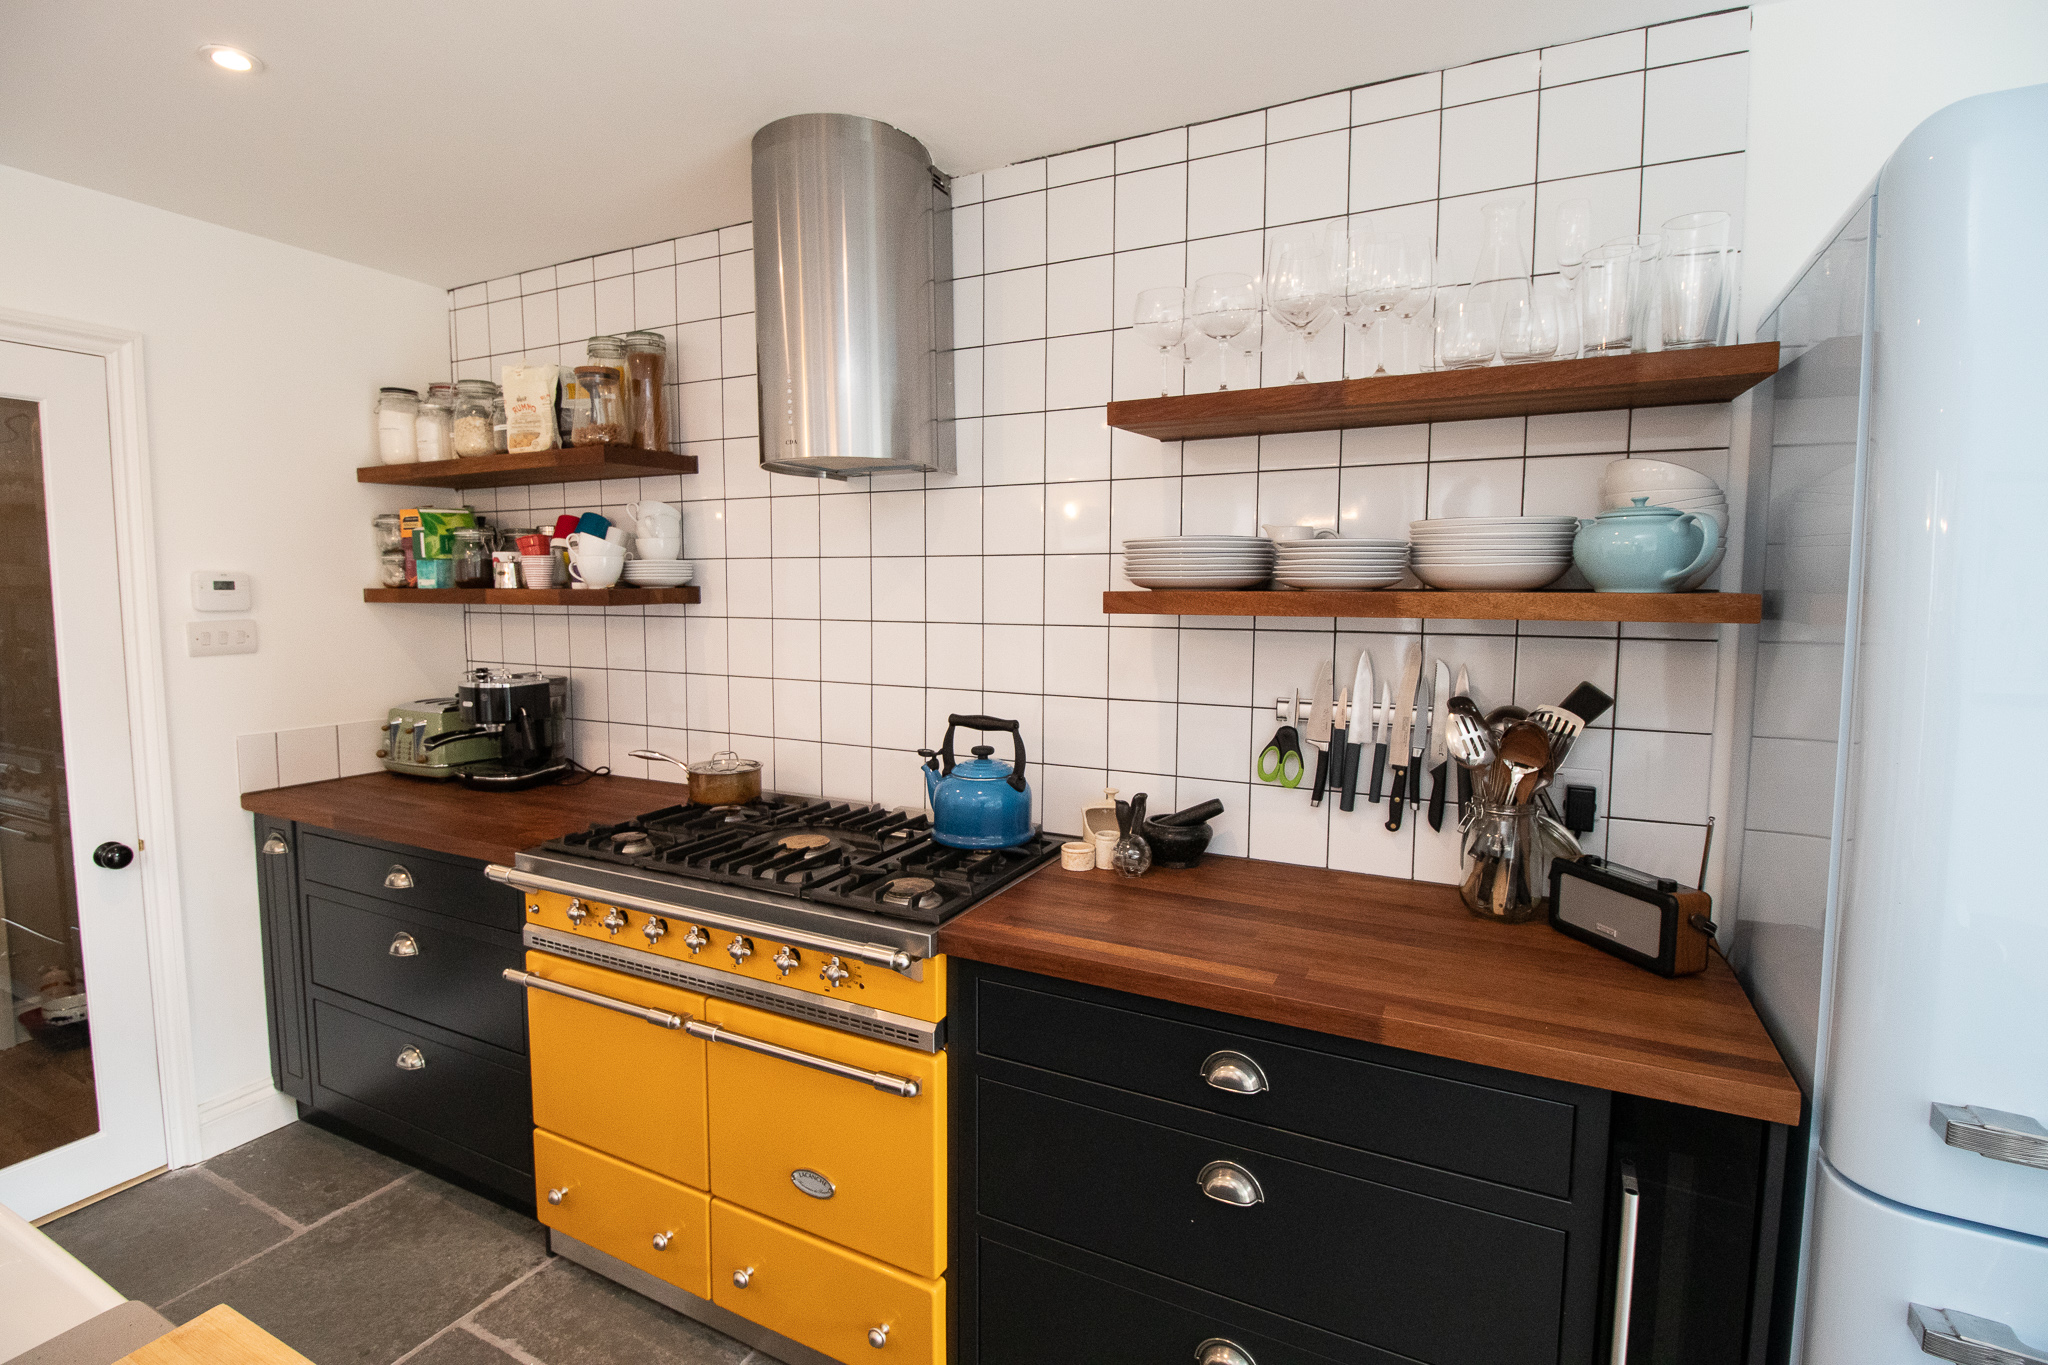 SMEG COOKER, SMEG FRIDGE, BLACK KITCHEN, MULTI COLOURED KITCHEN, OPEN SHELVES, WOODEN SHELVES, WOODEN COUNTERTOP.jpg